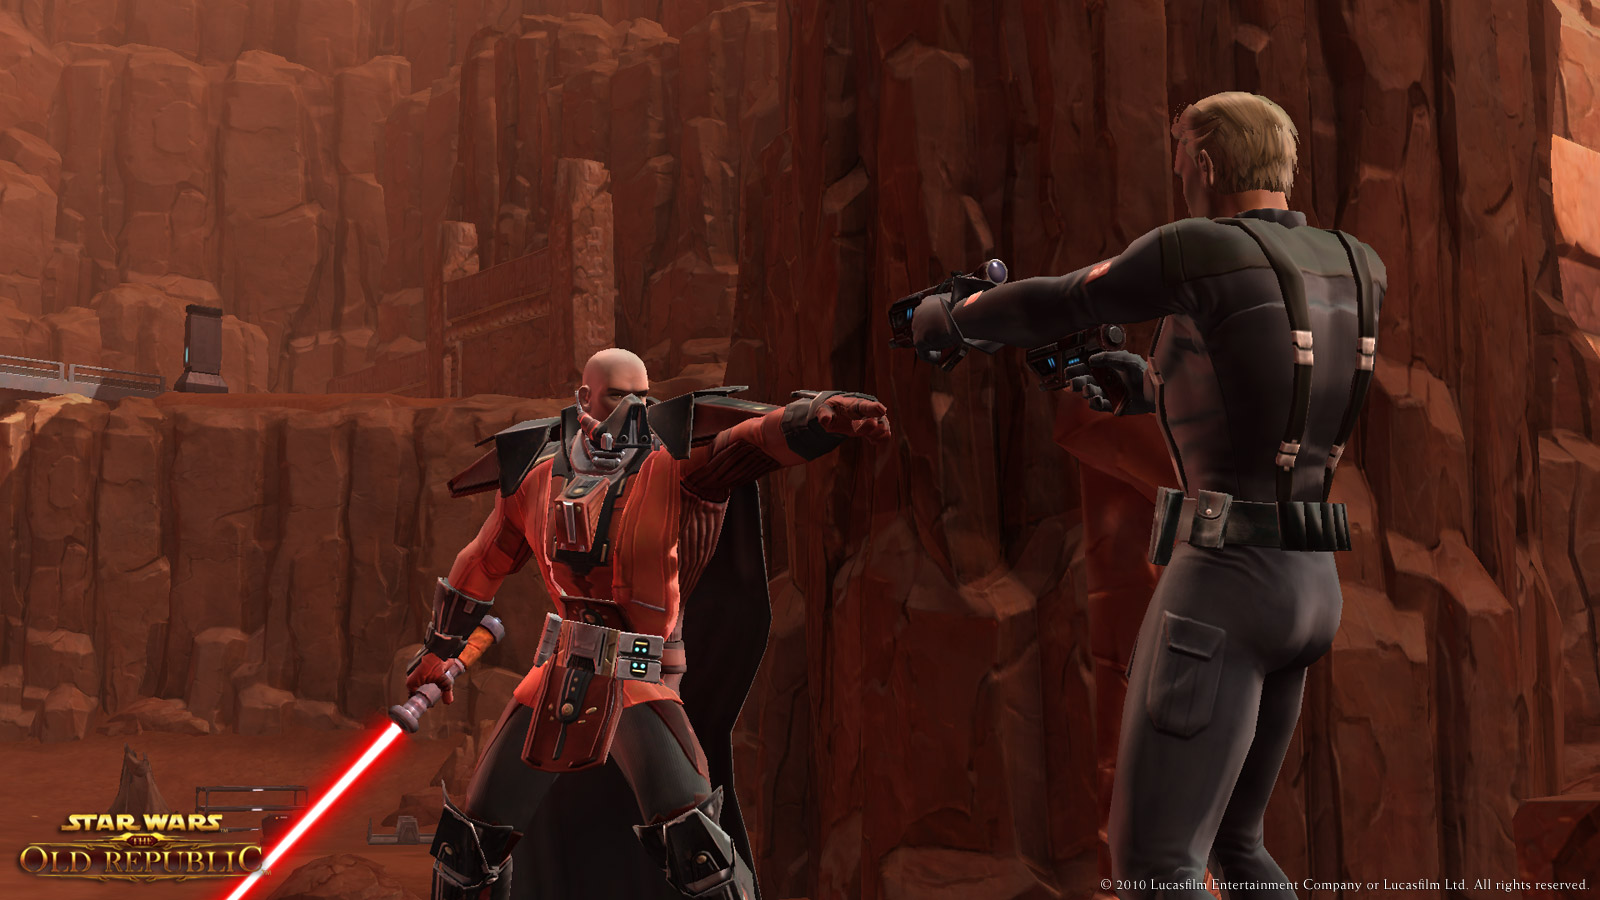 SWTOR Sith Juggernaut PVP Build